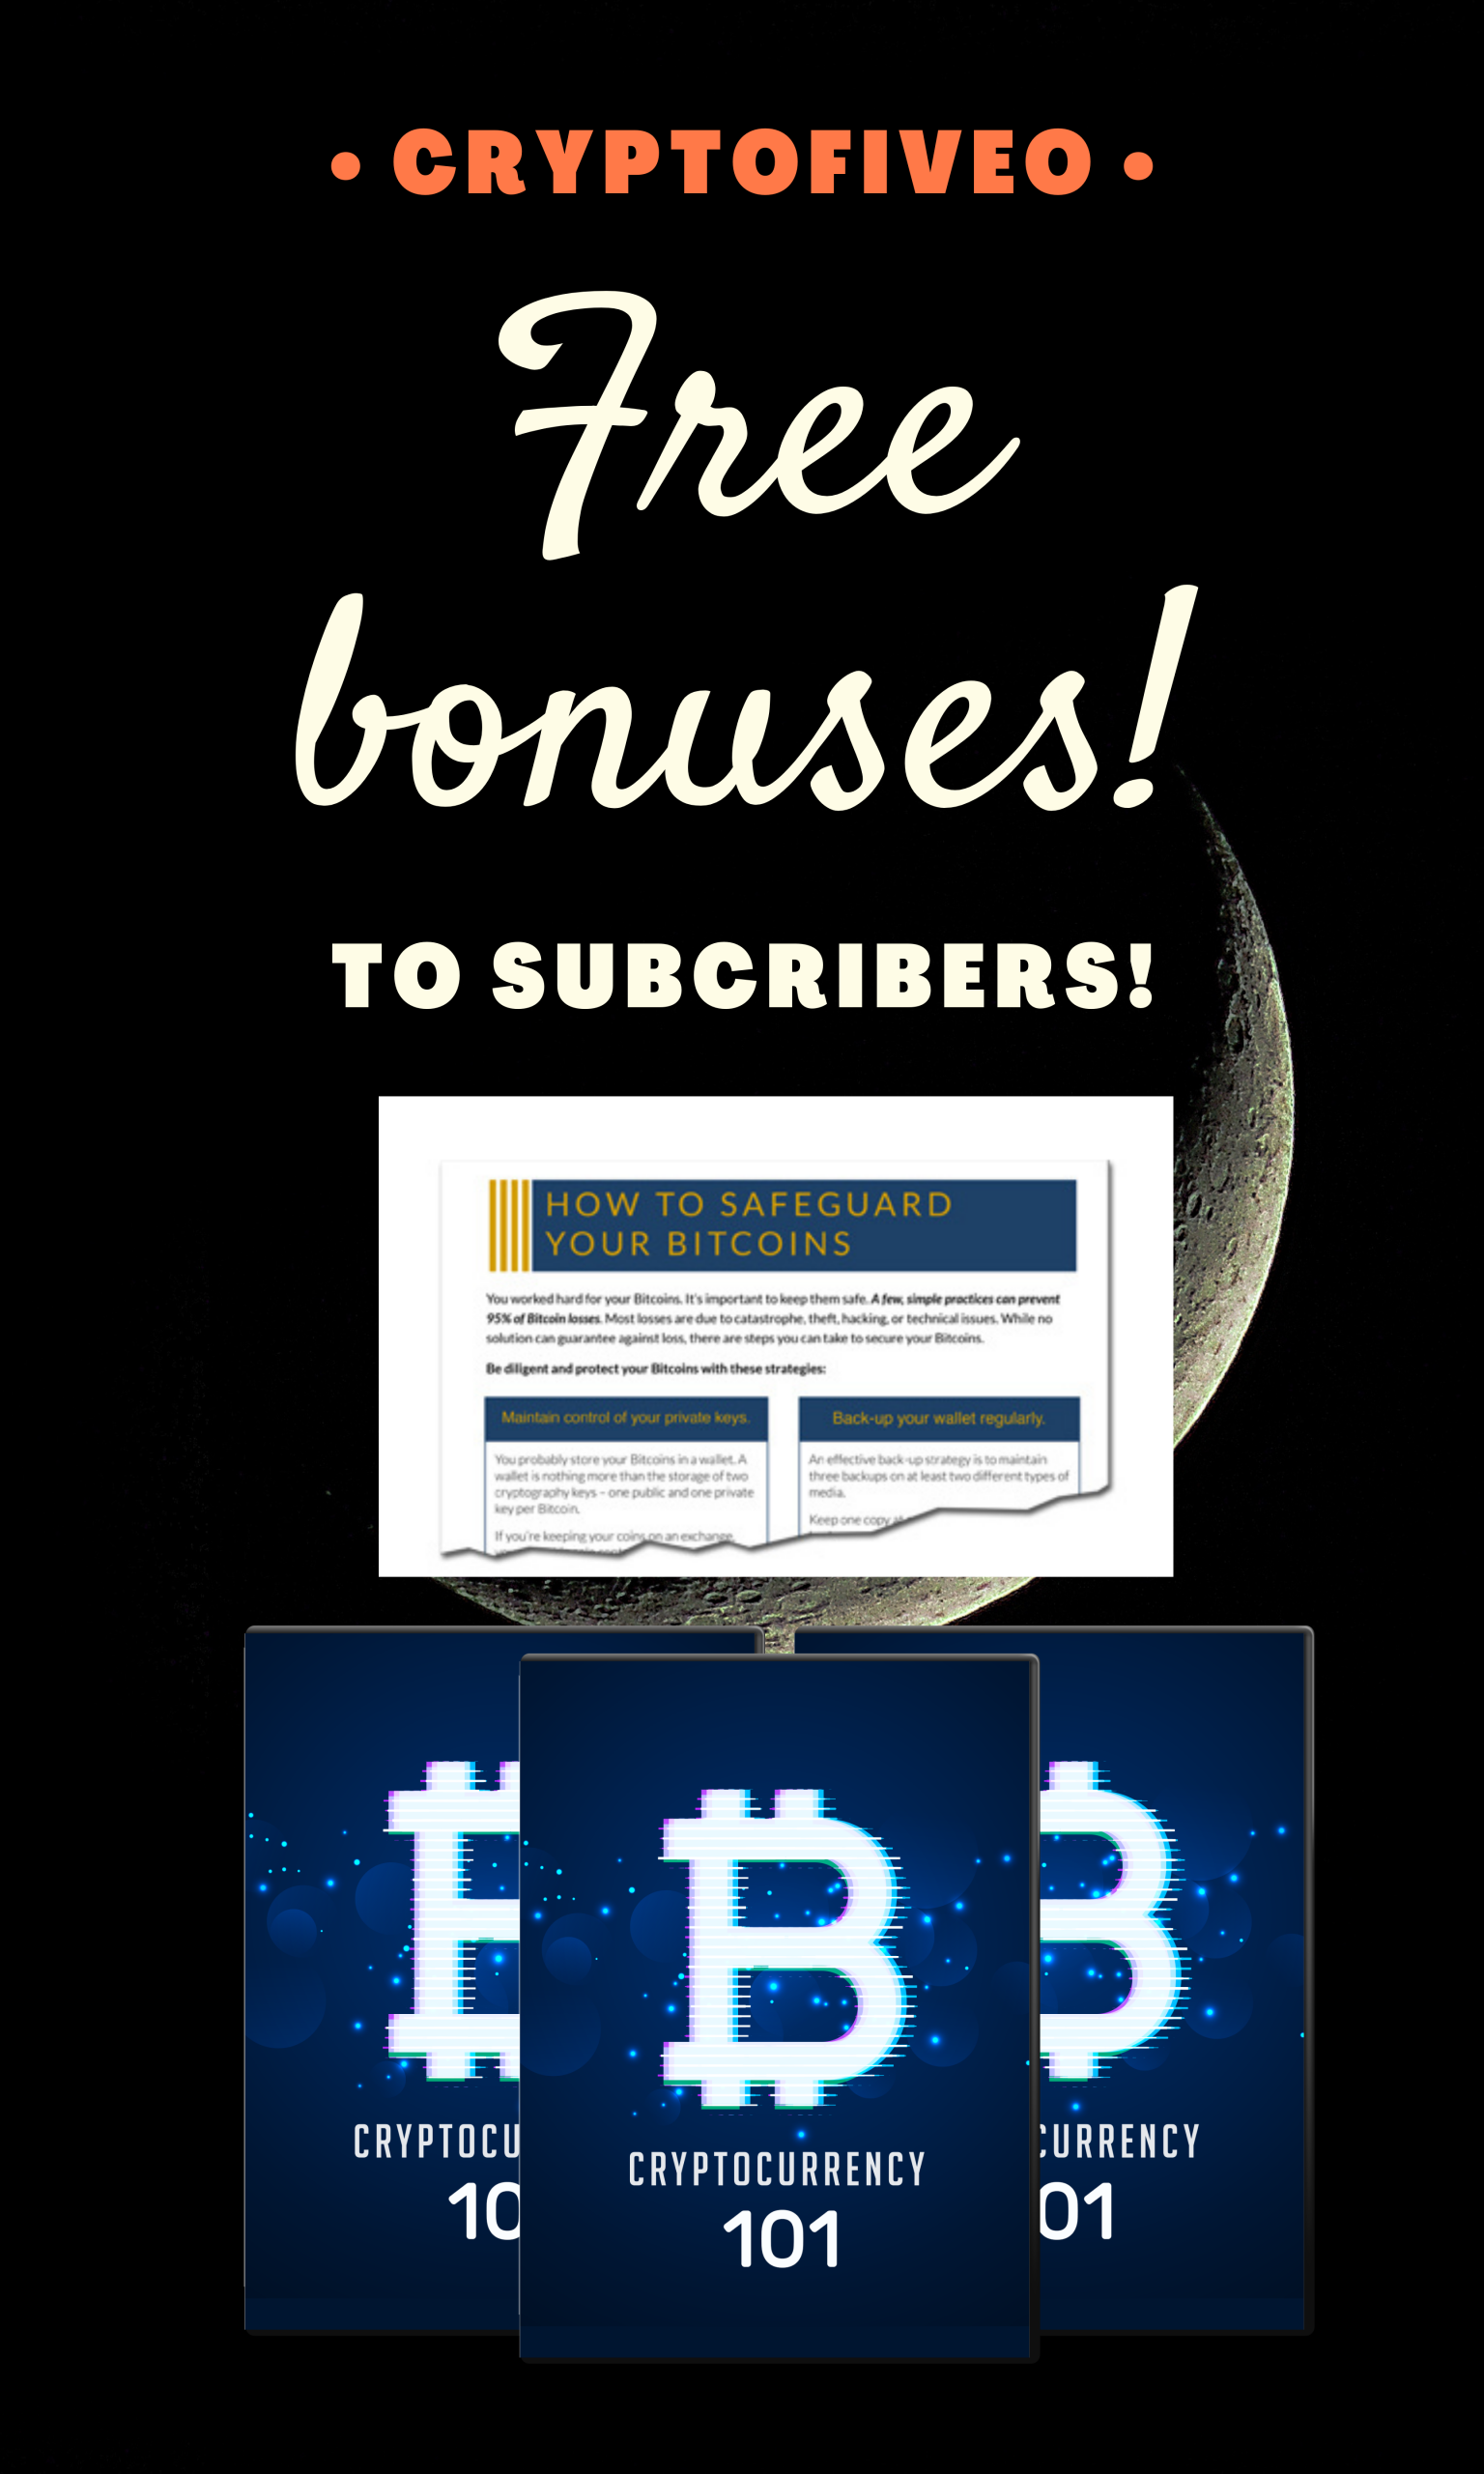 Receive a free article on how to safely manage your cryptocurrency and also a free video course about crypto assets.